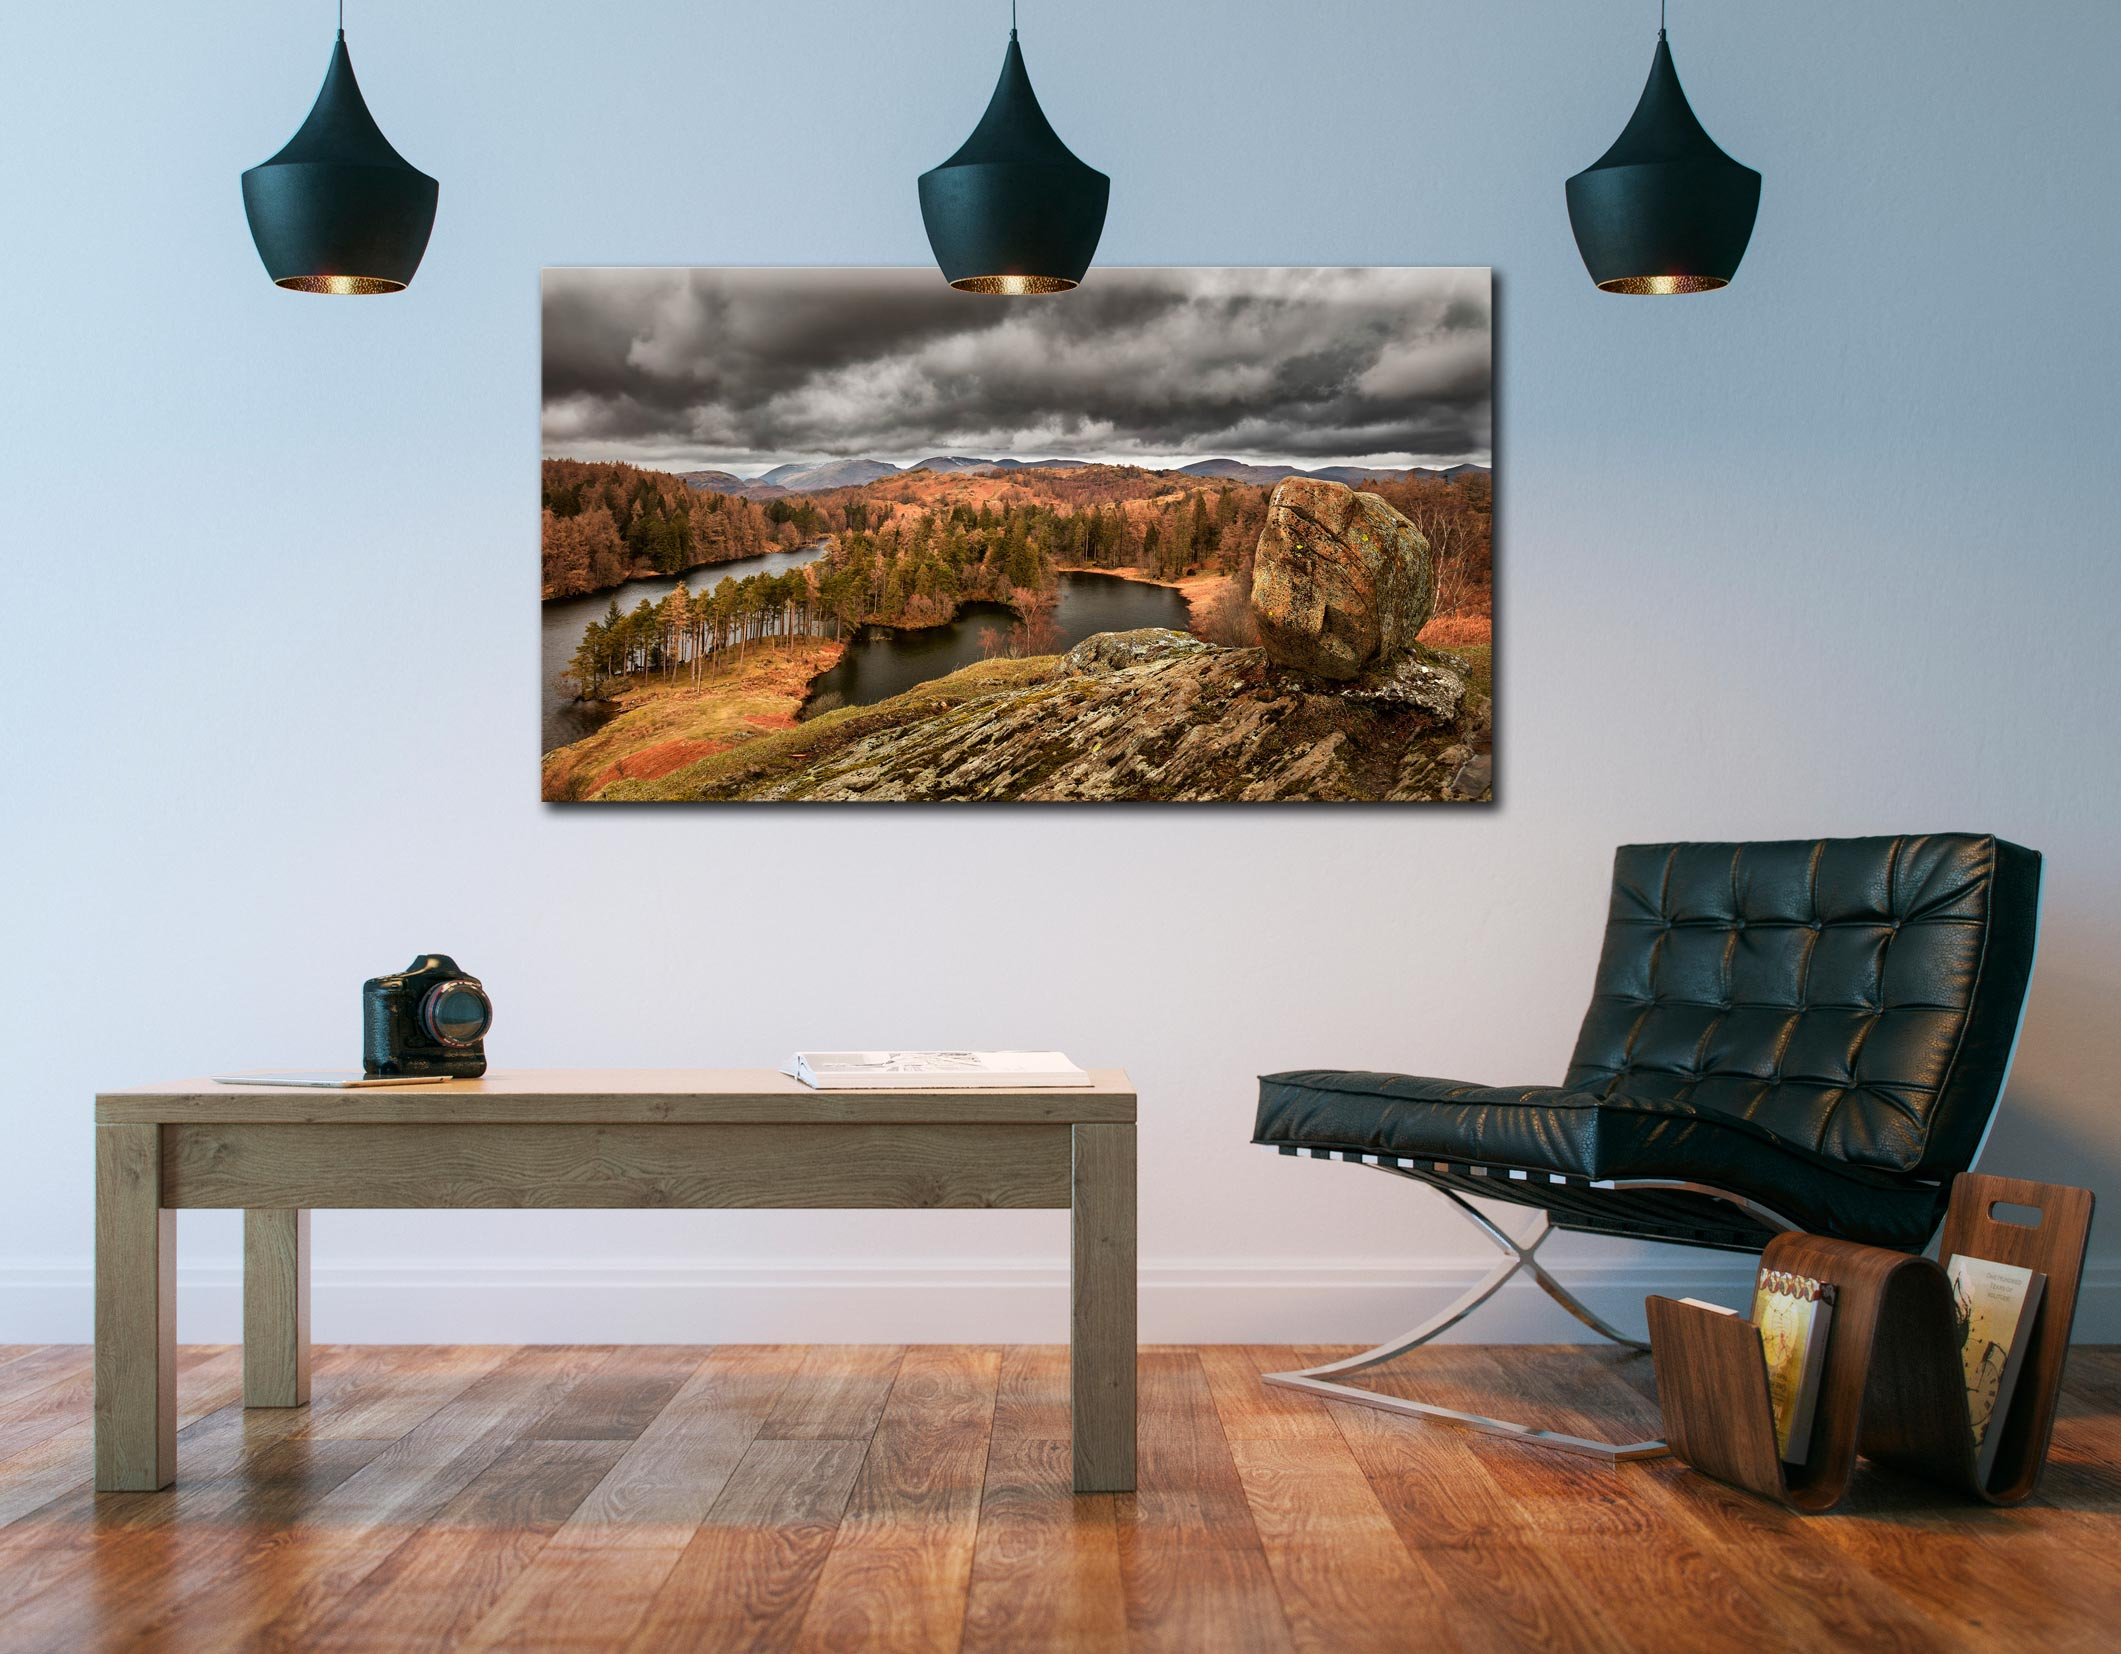 Grey Skies Over Tarn Hows - Canvas Print on Wall